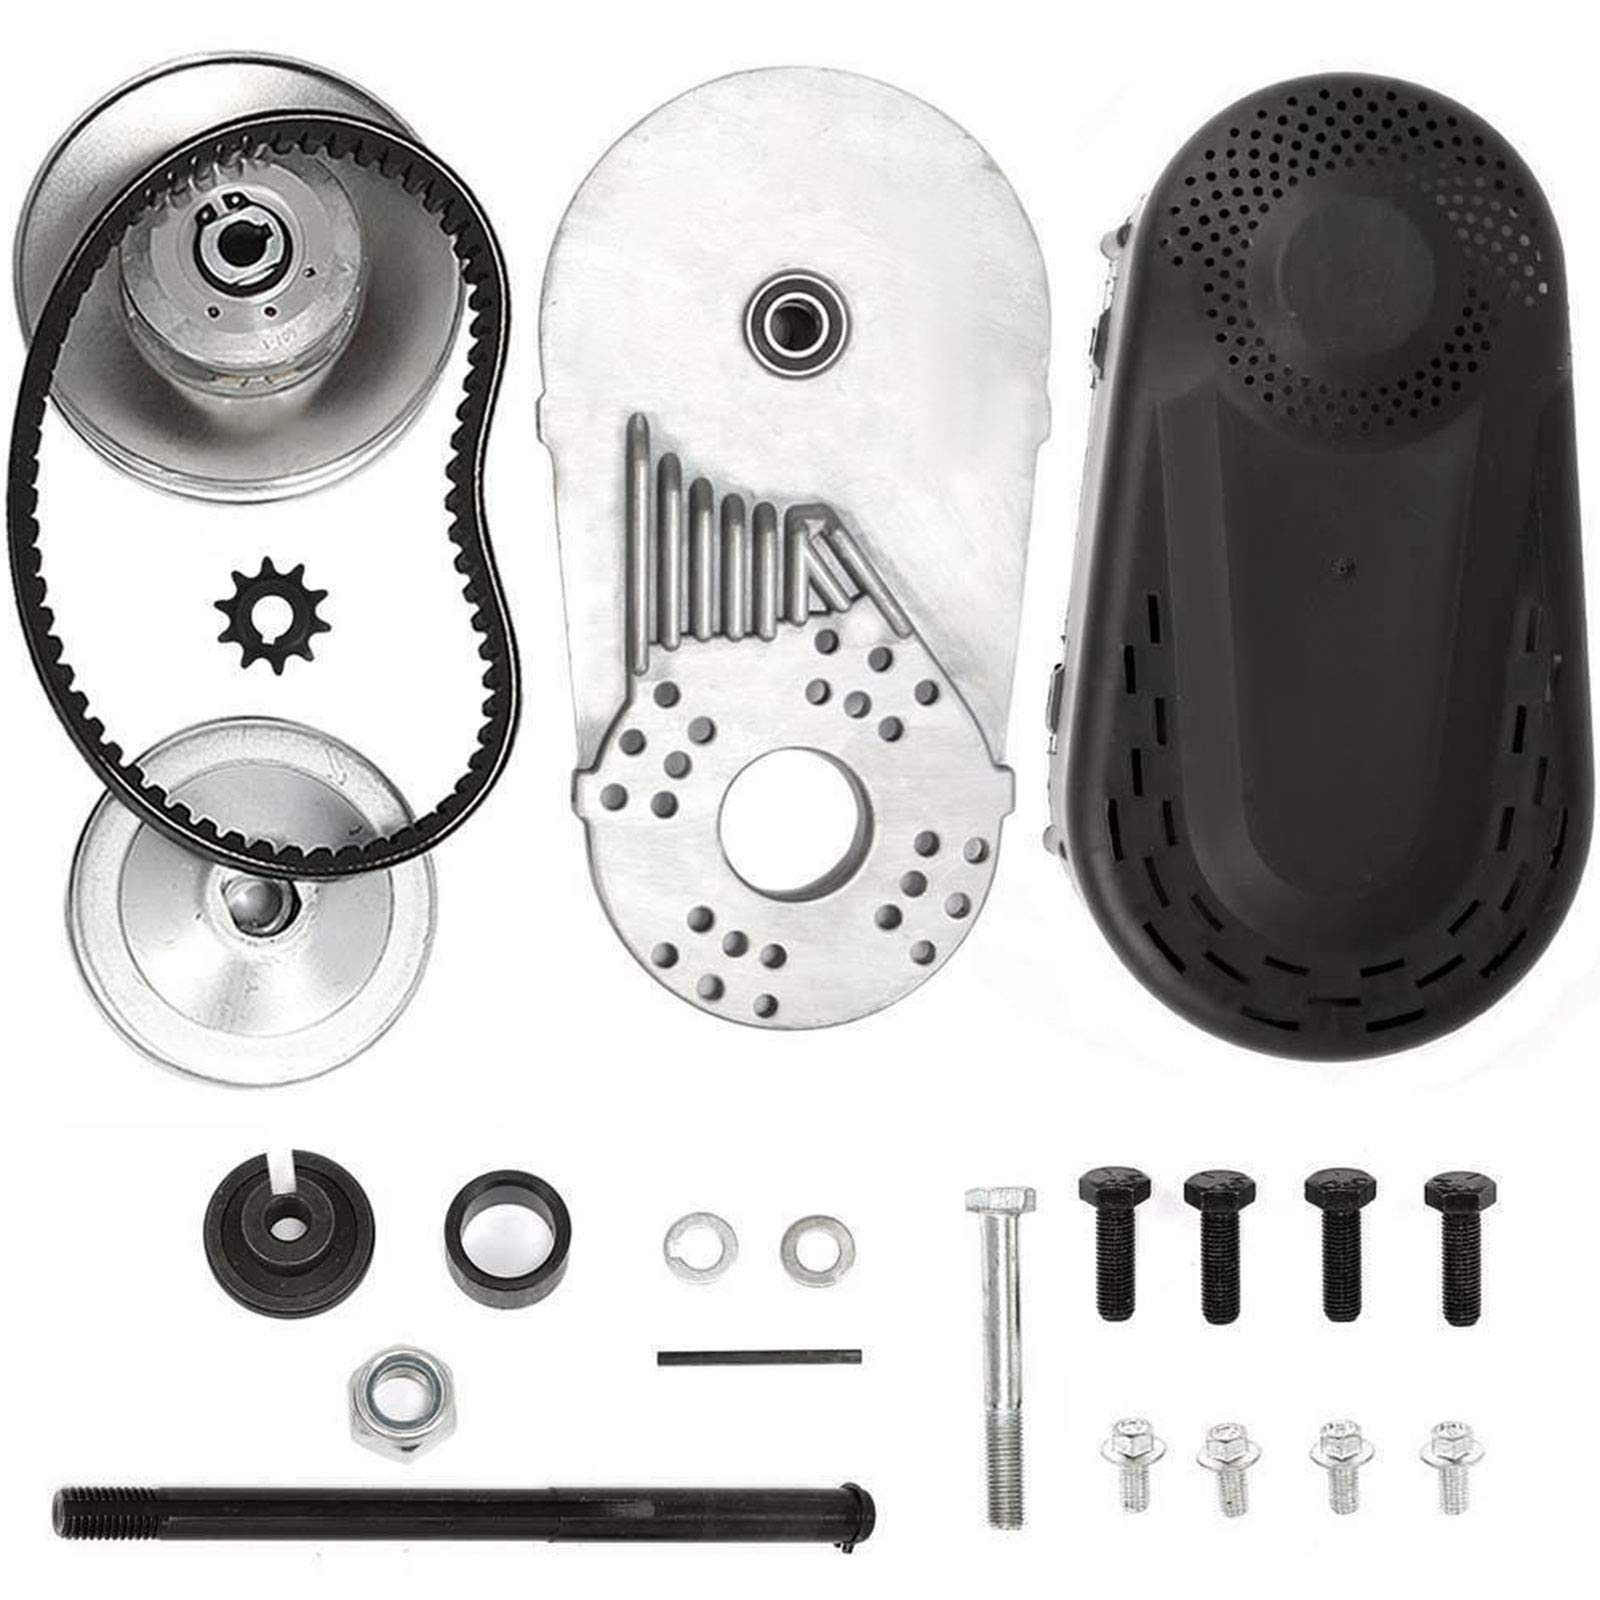 Mophorn Torque Converter Go Kart Clutch Go Kart Clutch Set Torque Converter Kit Three Fifth Inch 10T 12T and 12T 35 Chain